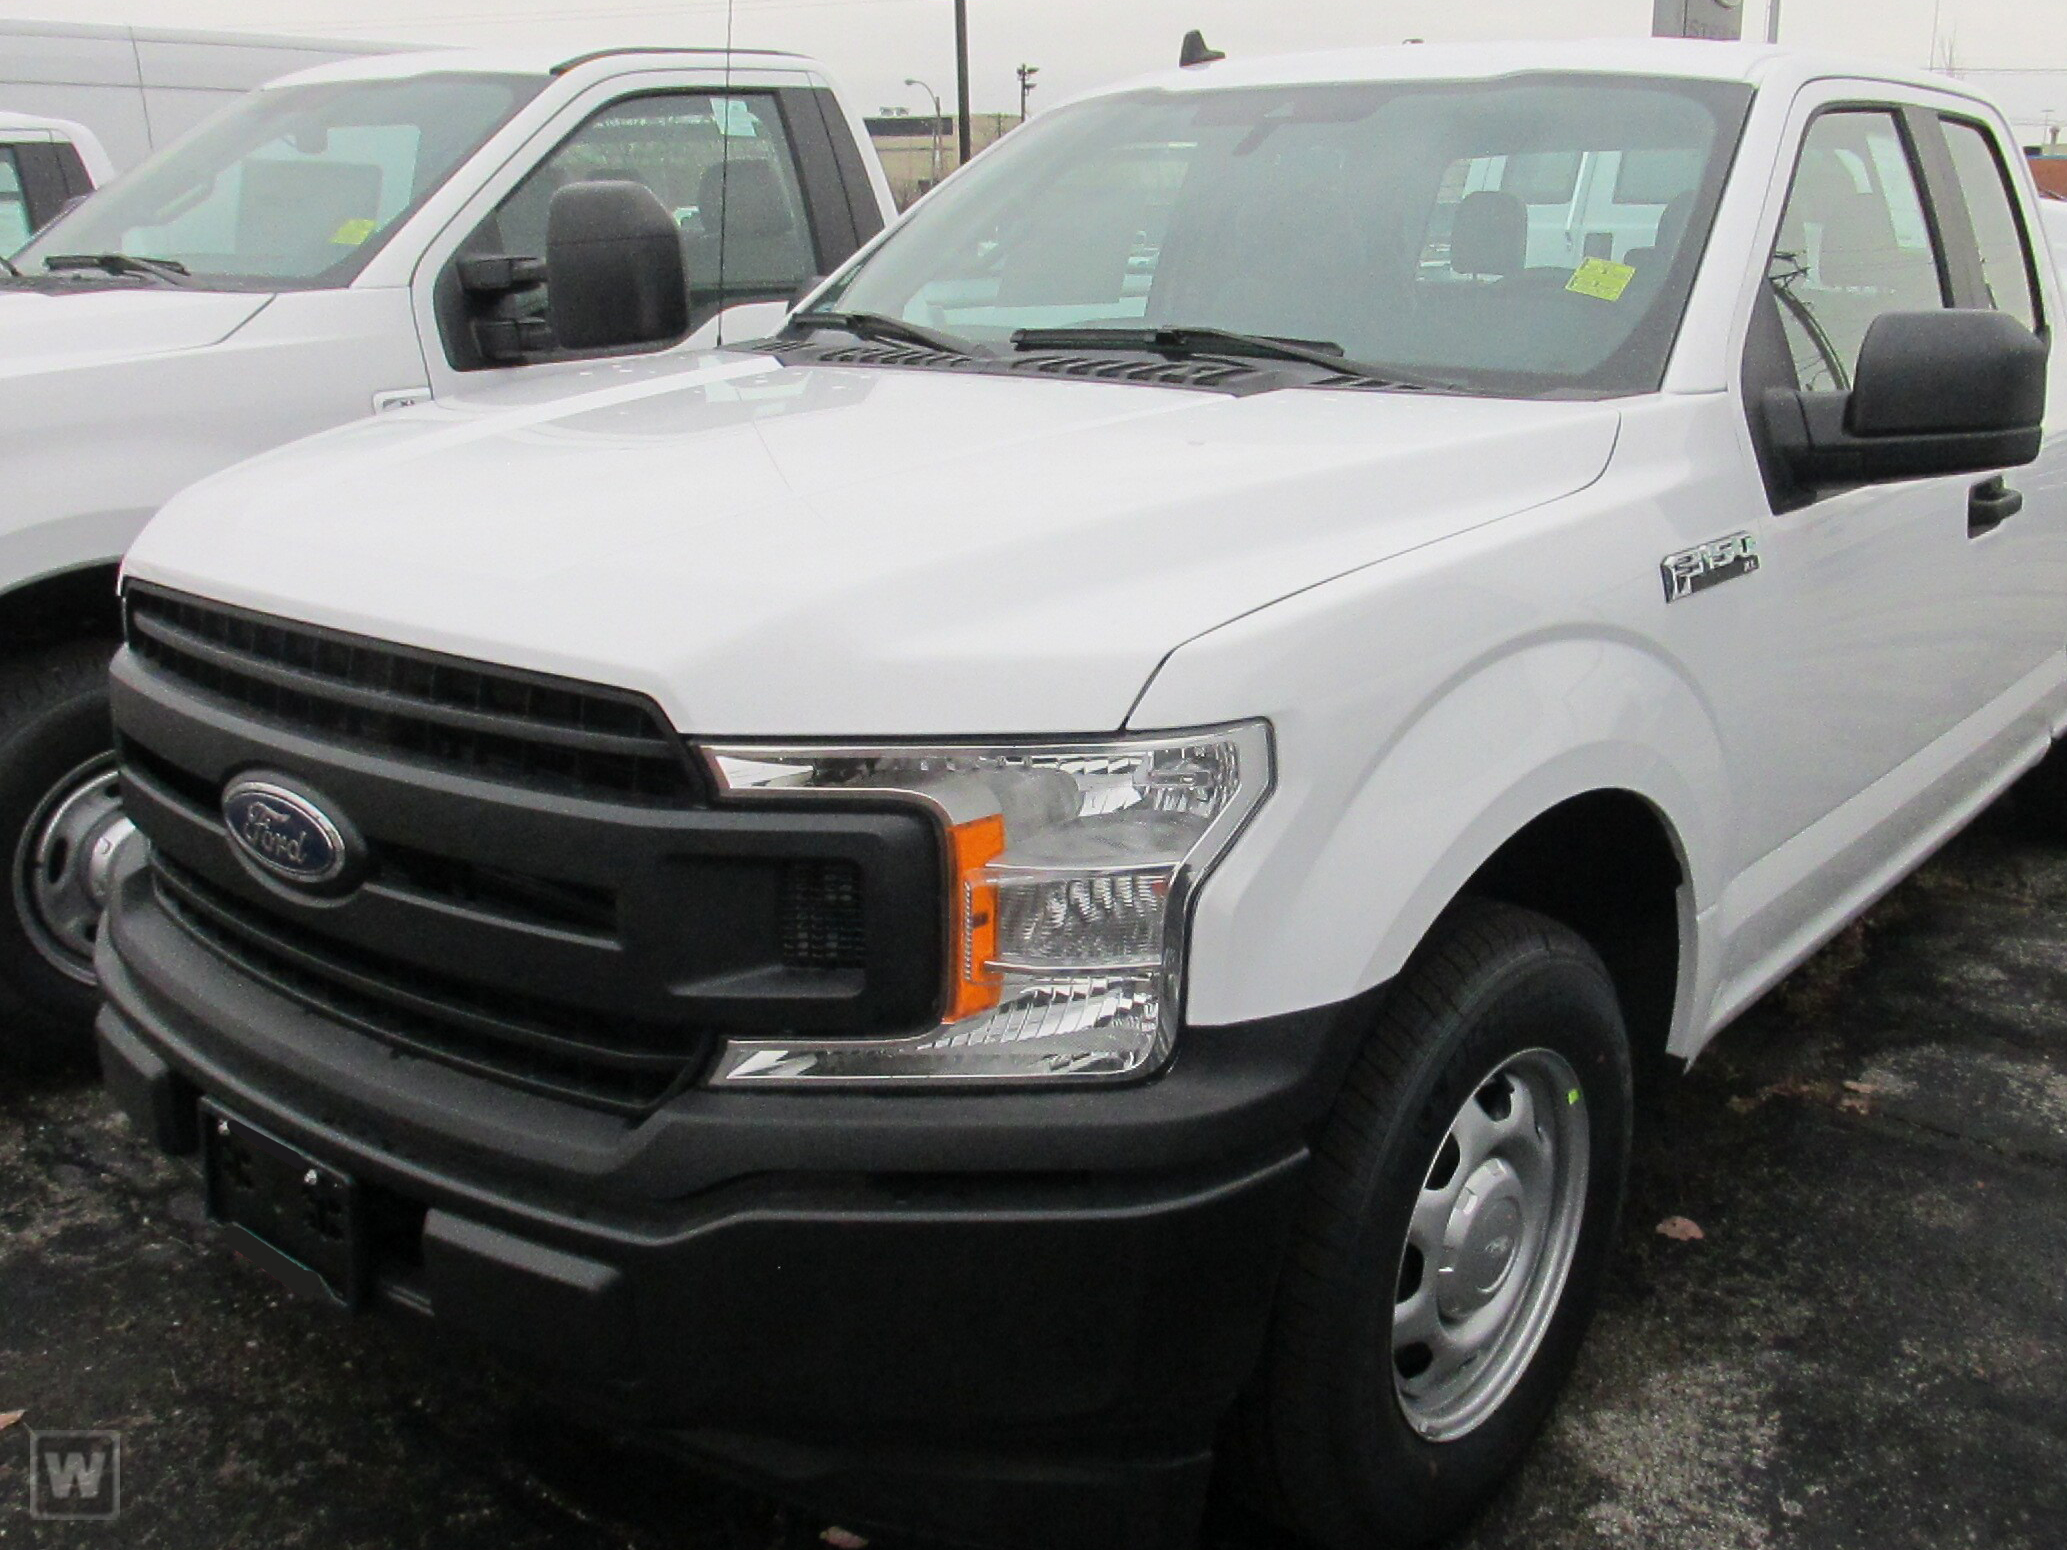 2020 Ford F-150 Super Cab 4x2, Pickup #20553 - photo 1